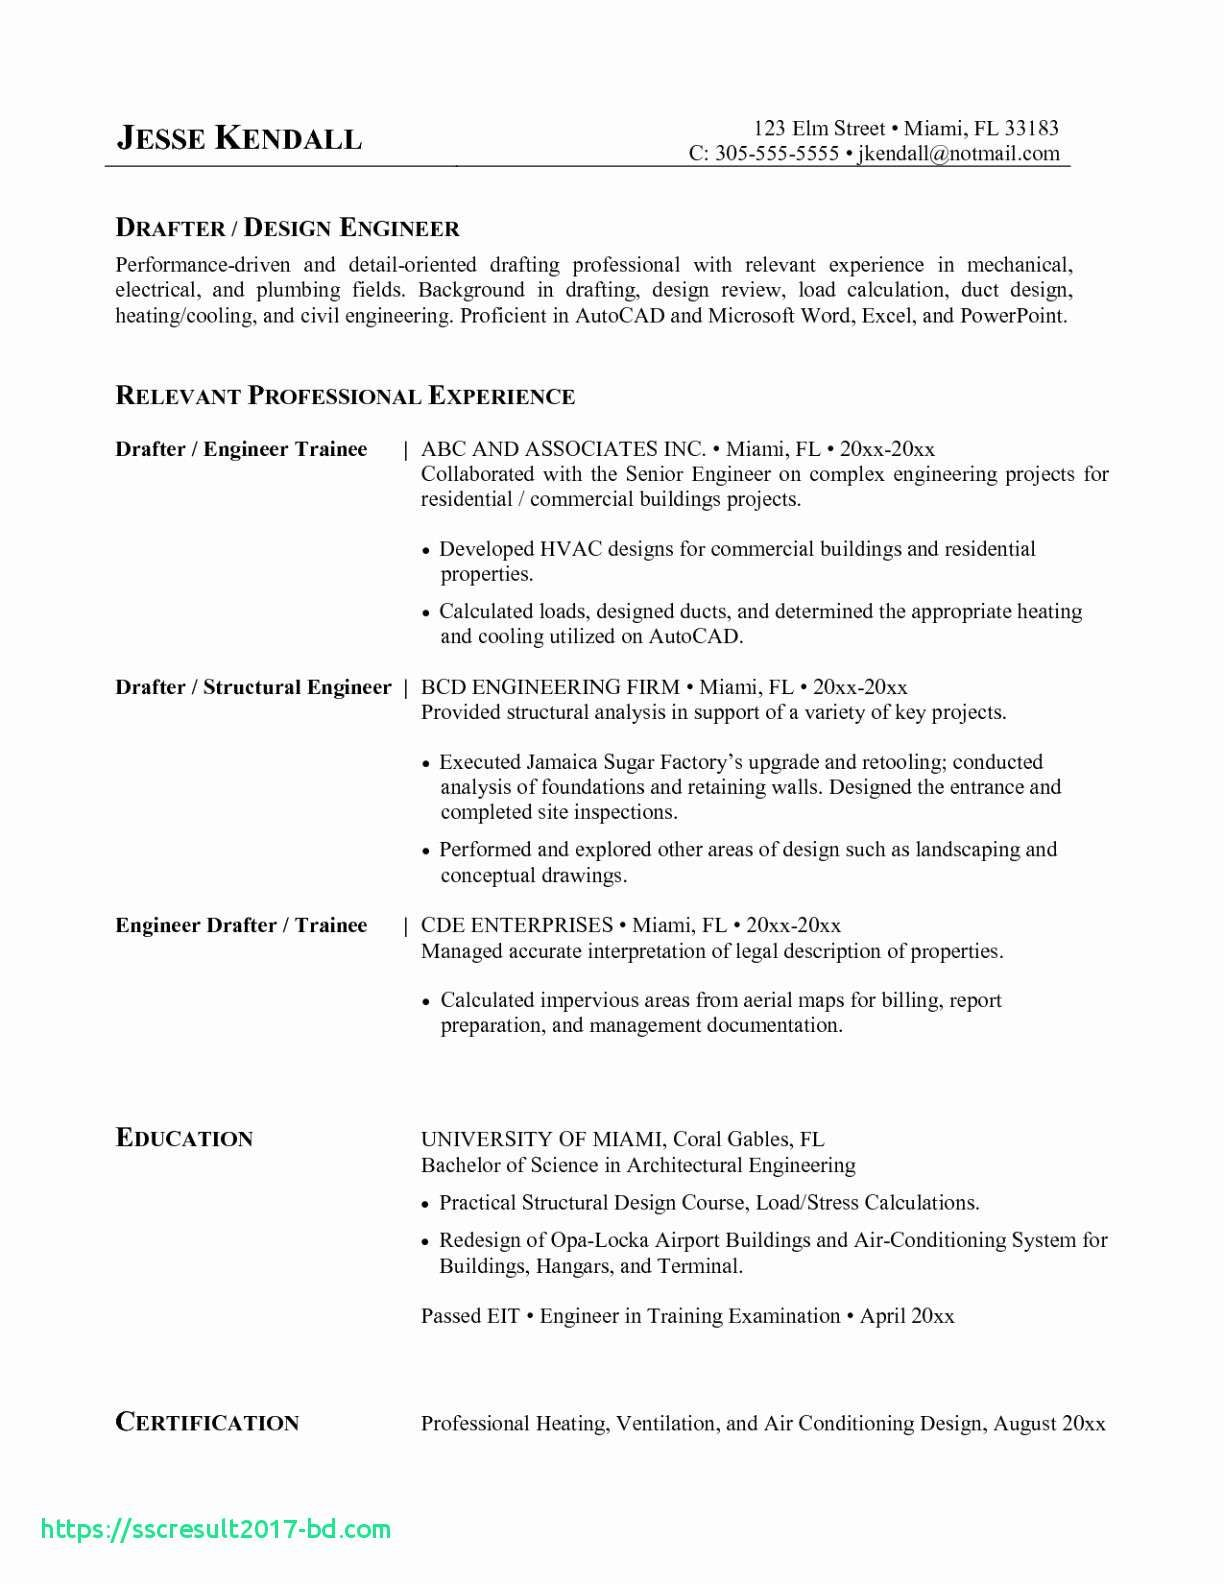 Pin by Joanna Keysa on Free Tamplate | Sample resume ...